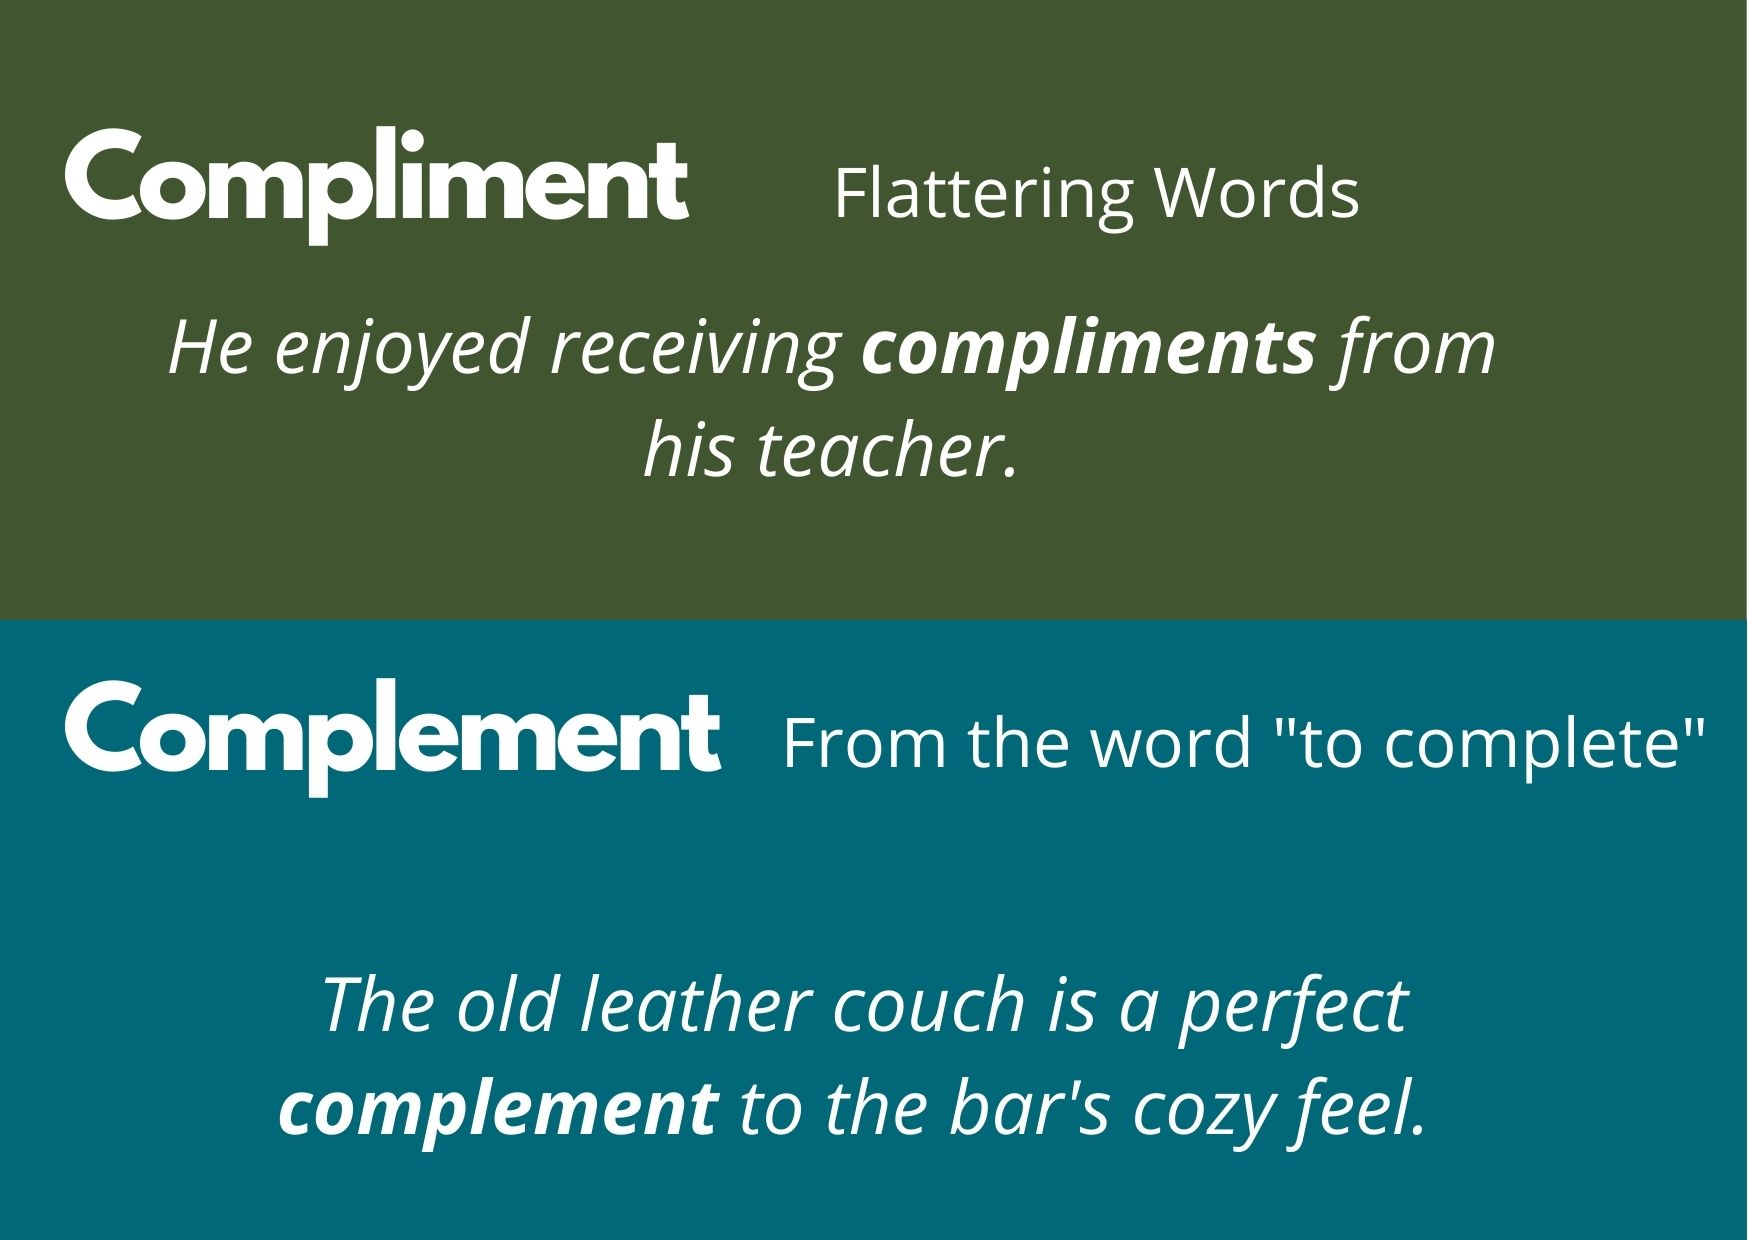 """Graphic describing the difference between a compliment (flattery) and a complement (from the word """"complete"""")"""